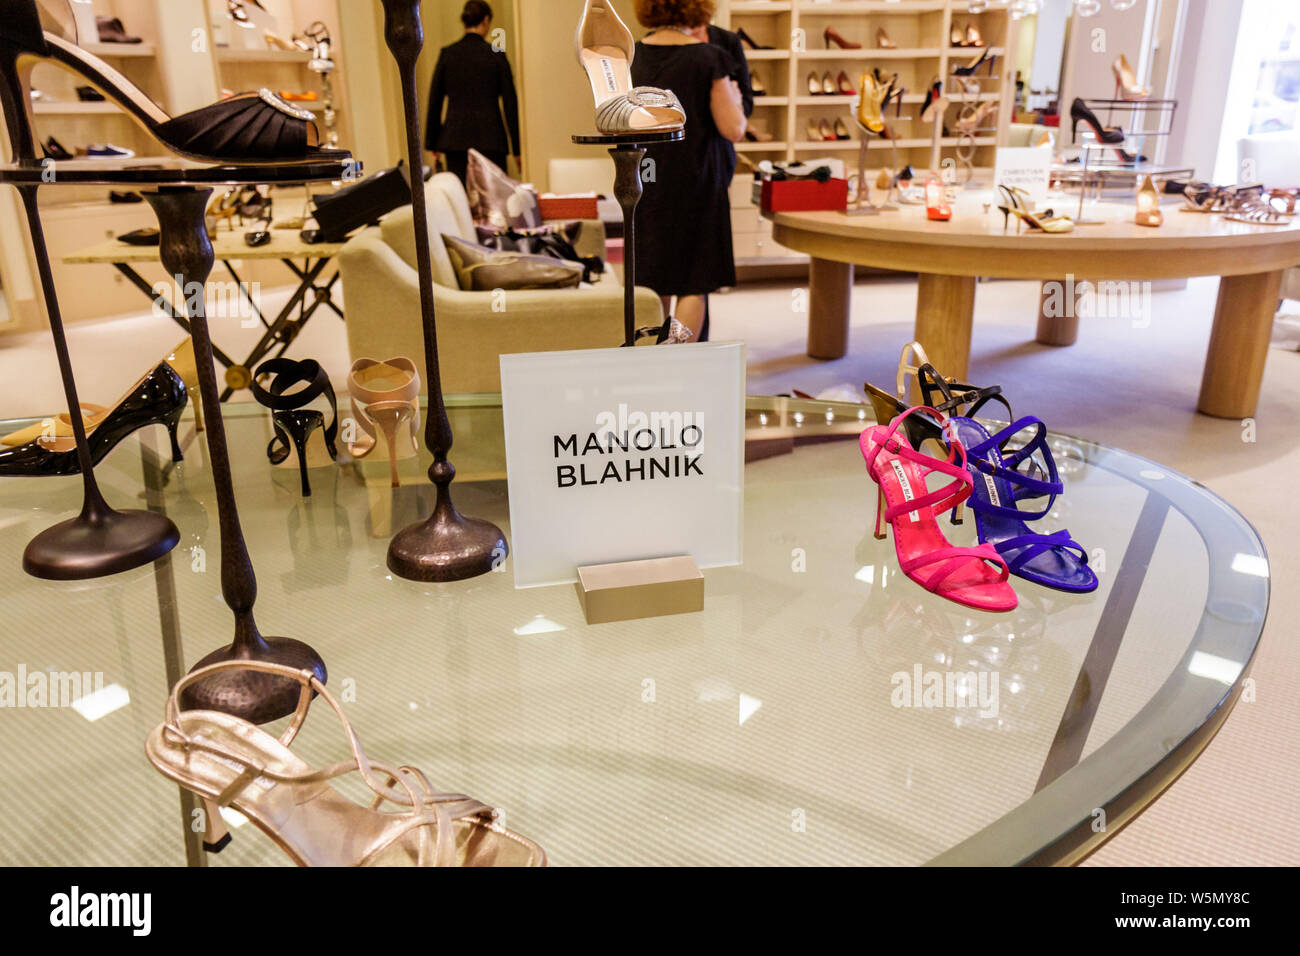 Palm Beach Florida Worth Avenue Saks Fifth 5th Avenue upscale luxury high-end department store fashion business shopping retail Stock Photo